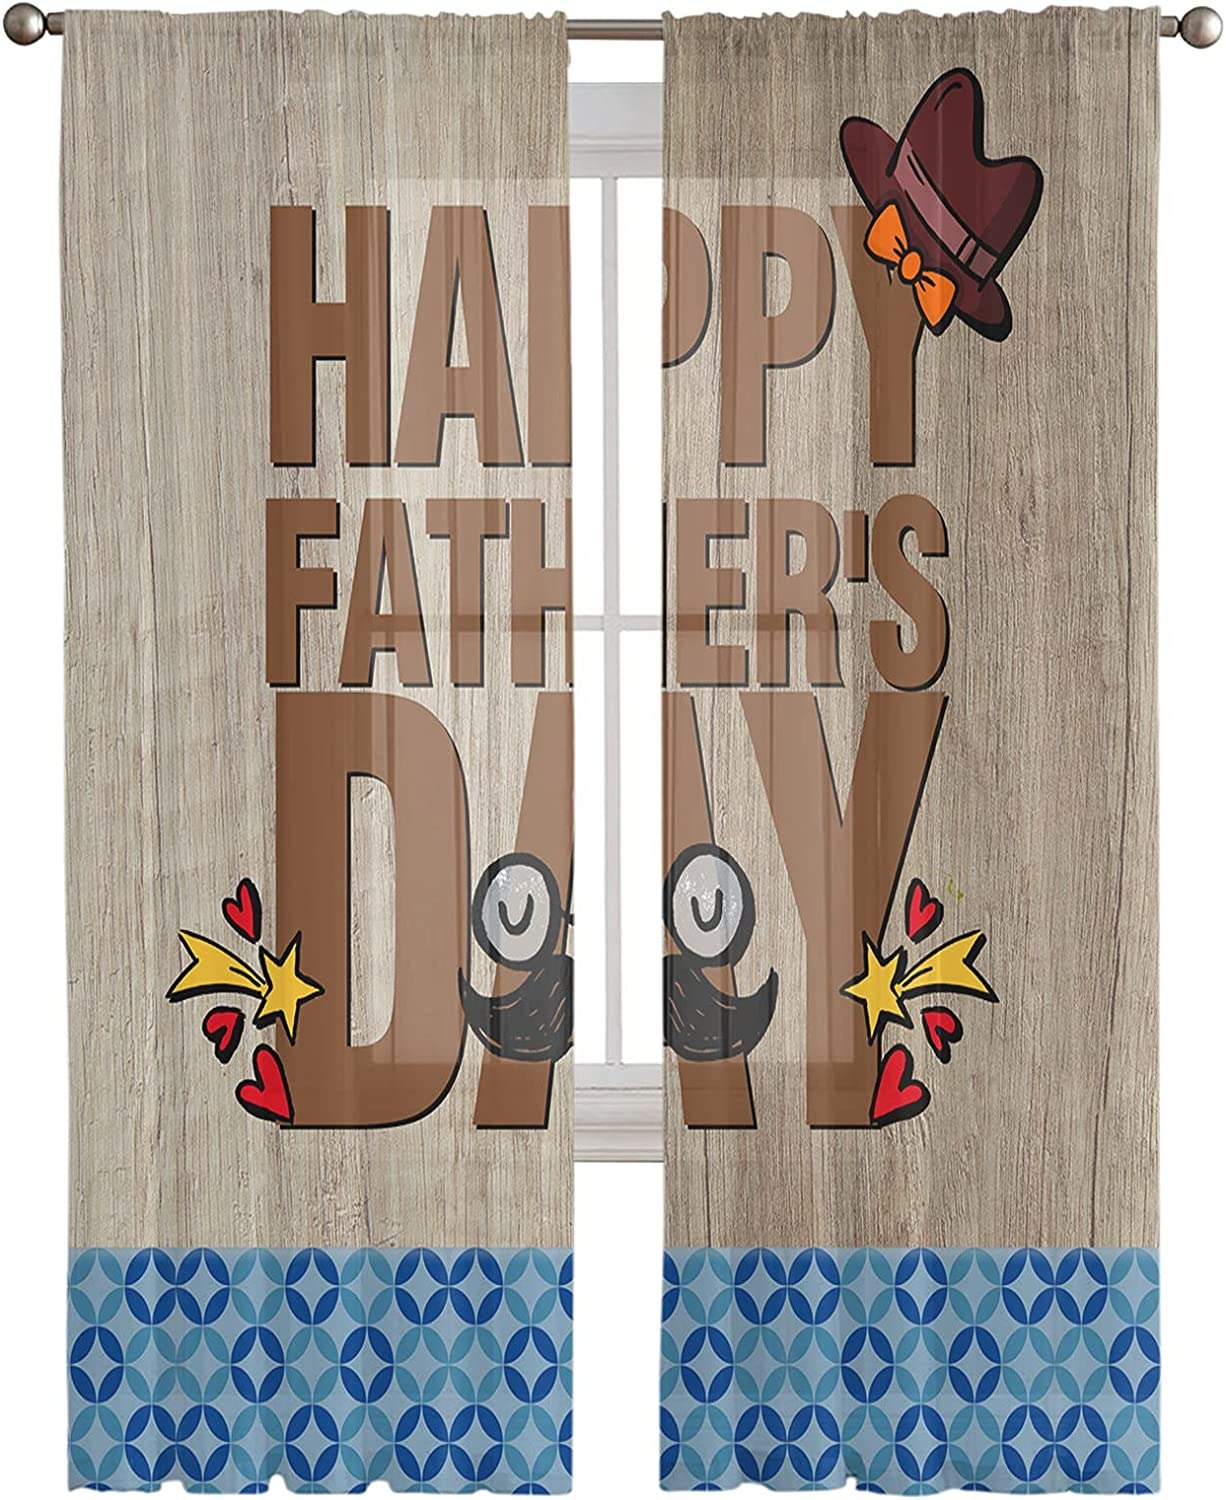 Outlet sale feature Voile Sheer Curtains 63inch Length Happy Day Father's 2 Max 82% OFF Panels